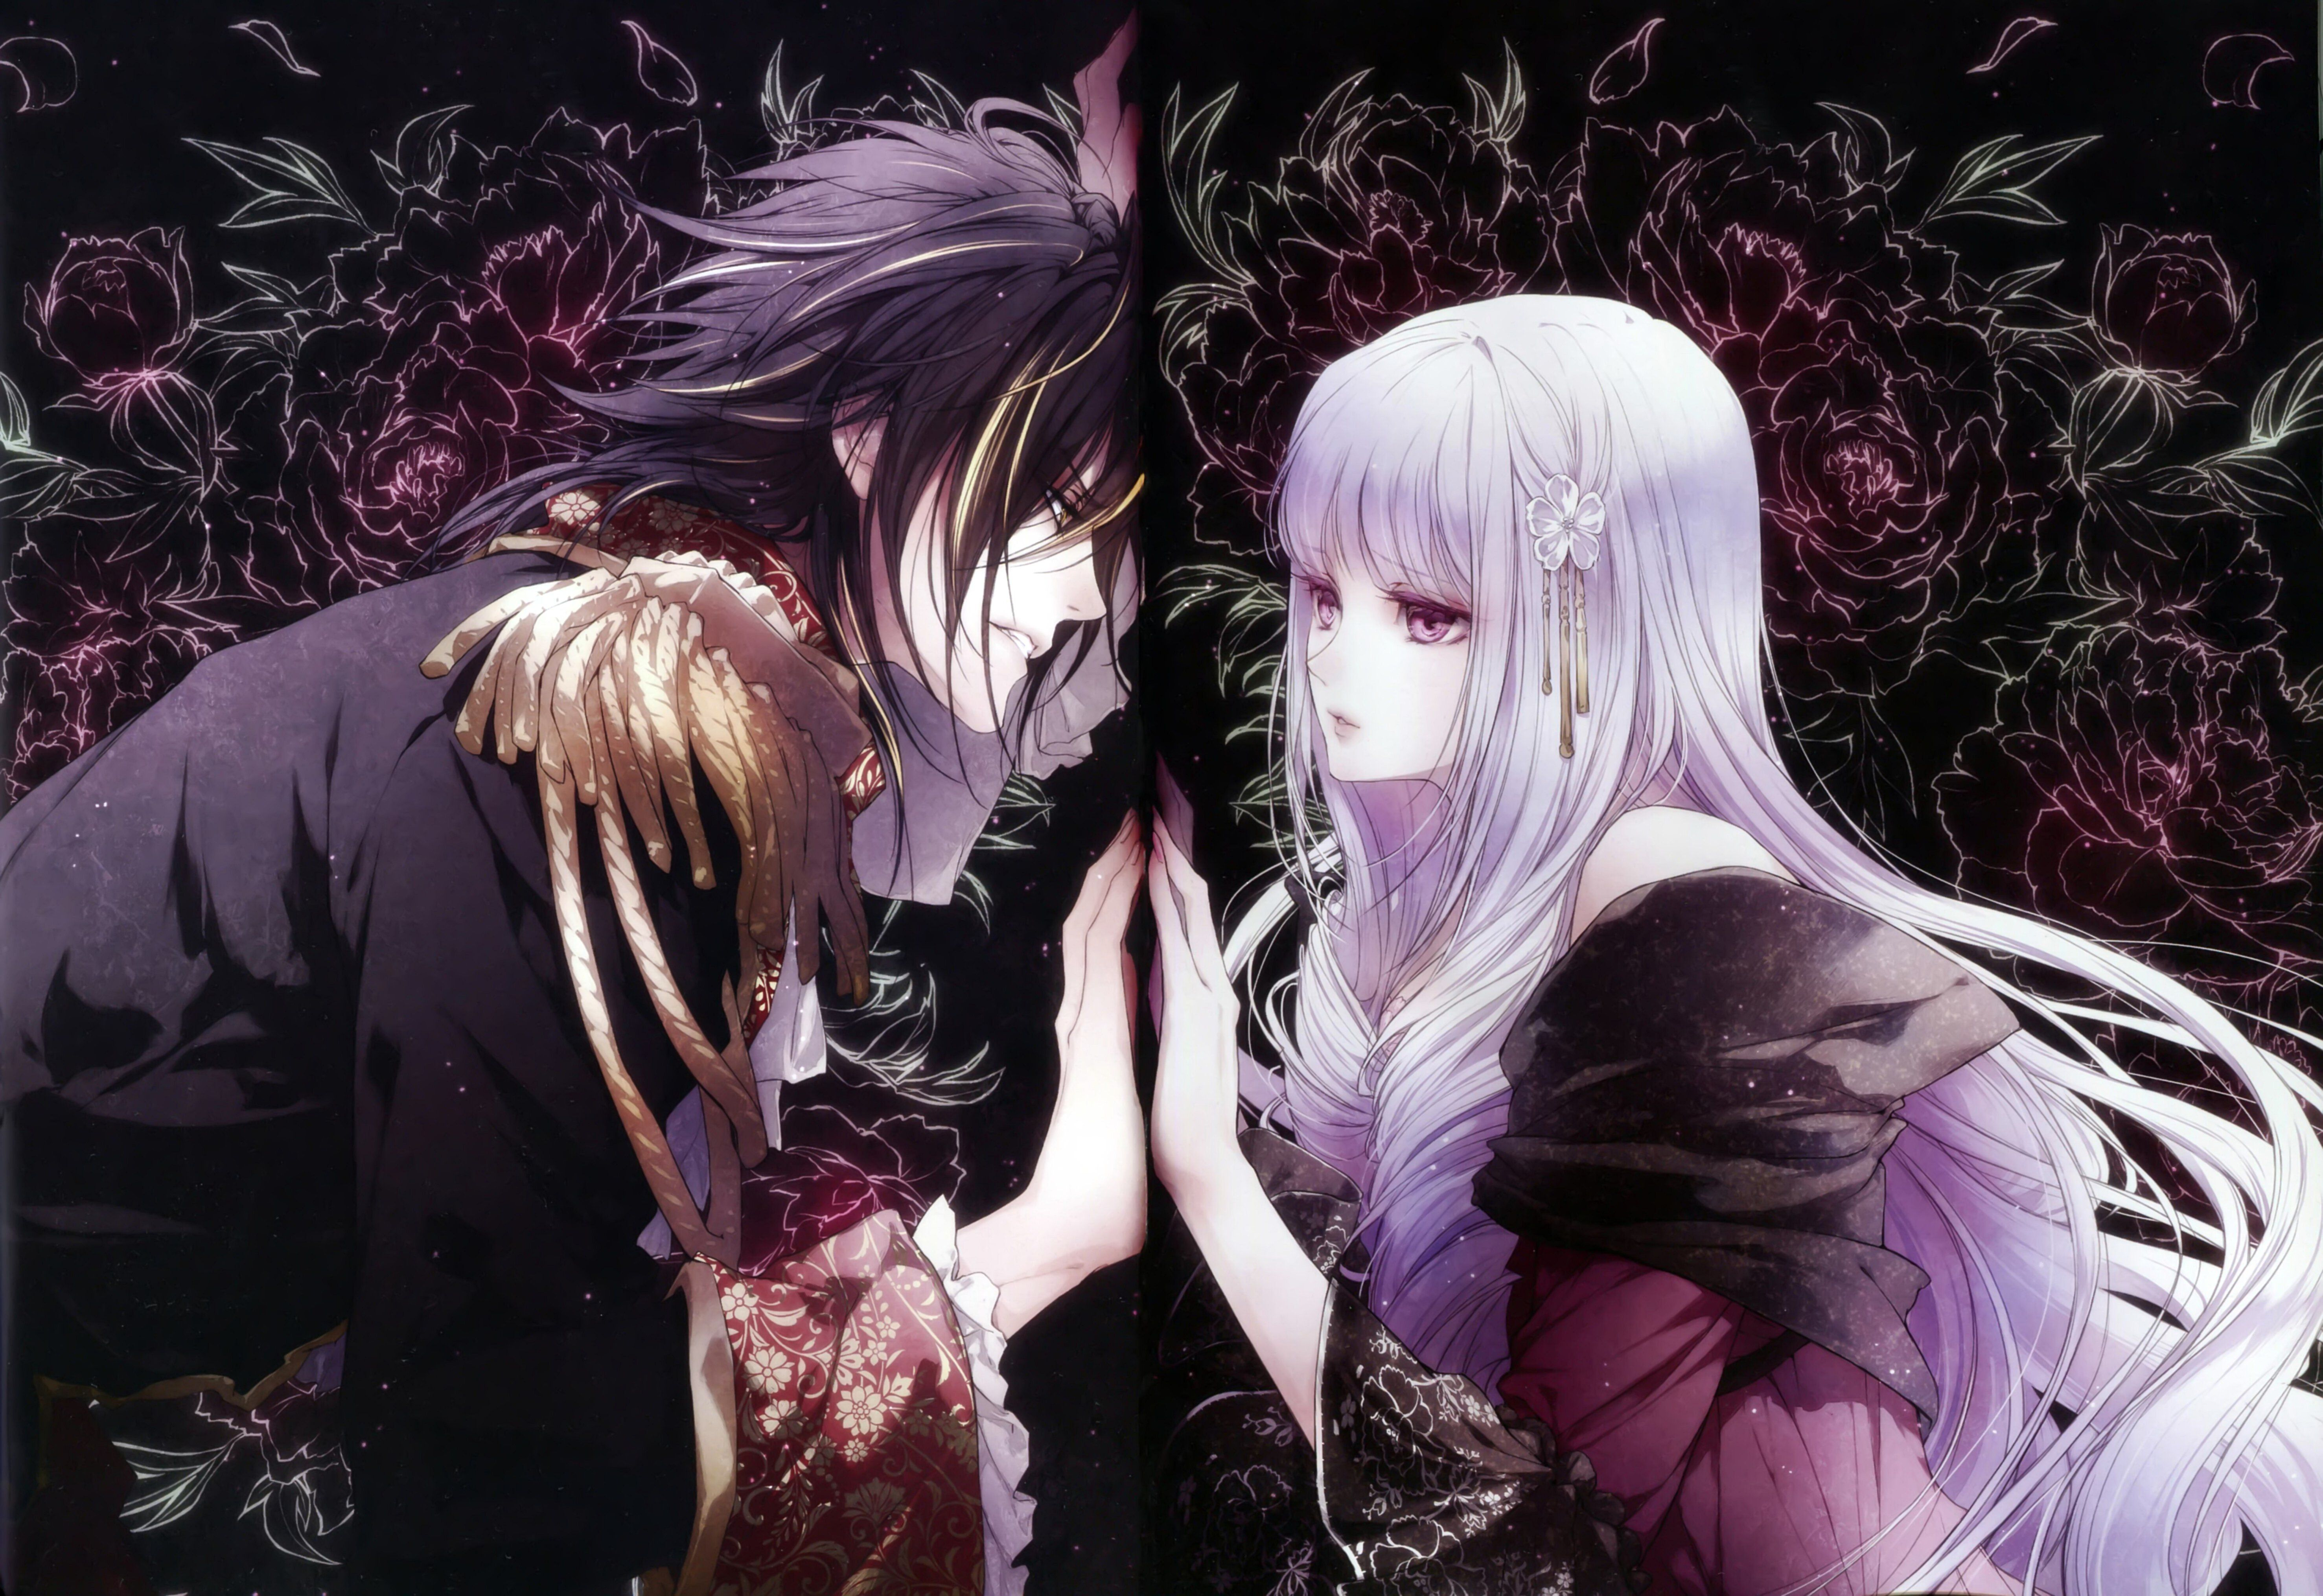 Gothic Anime Picture. Gothic anime, Anime liebe und Anime